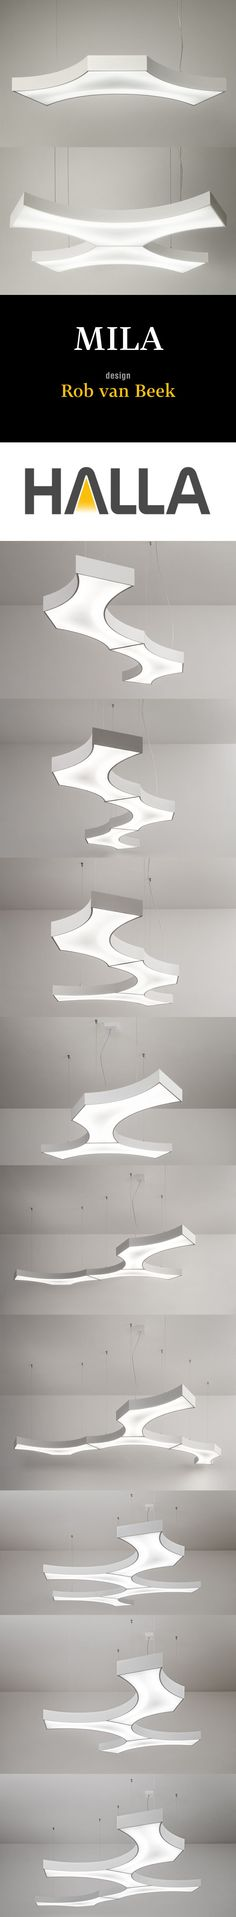 HALLA MILA #LED #Lighting system offers an unlimited freedom of various shapes by combining just one light fixture. Individual #light #fixtures are coupled by a unique magnetic system without using other tools; this is why assembling the lighting system is very simple, allowing many alternatives in respect of the shape and #architecture.